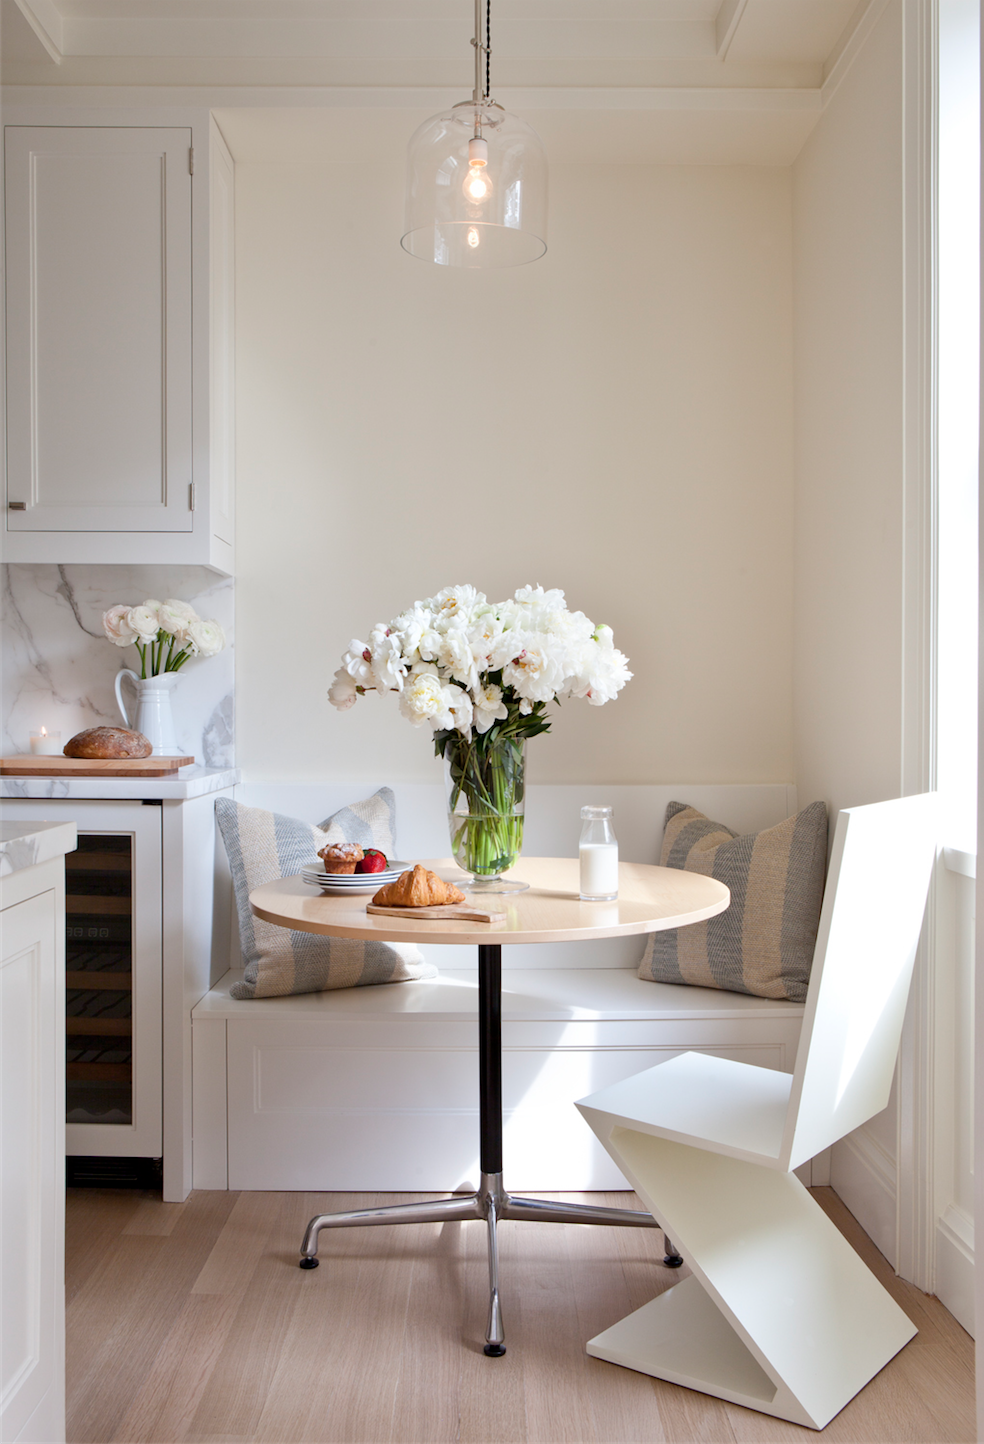 White Kitchen Banquette Seating By Kapito Muller Interiors Https Instagram Kapitomullerinterior